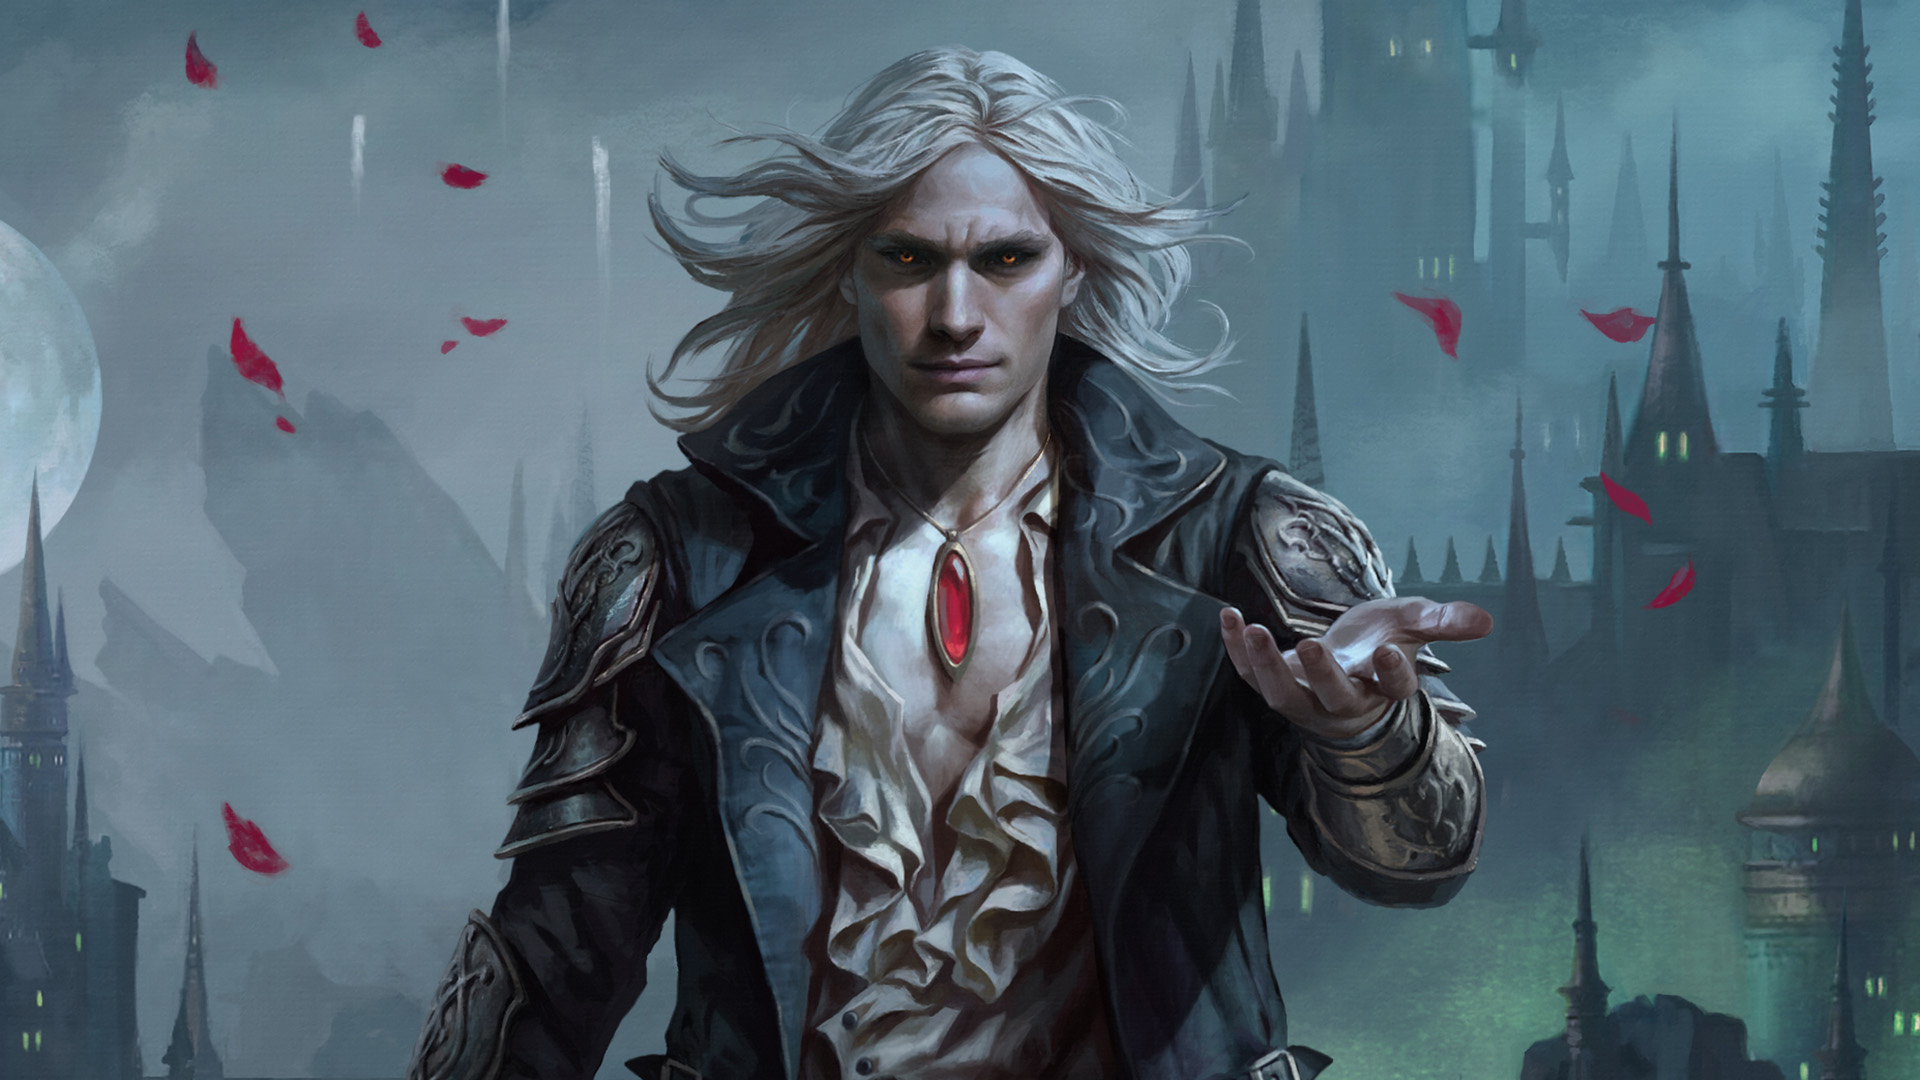 A dashing vampire walks into the frame, rose petals floating on the breeze behind him.